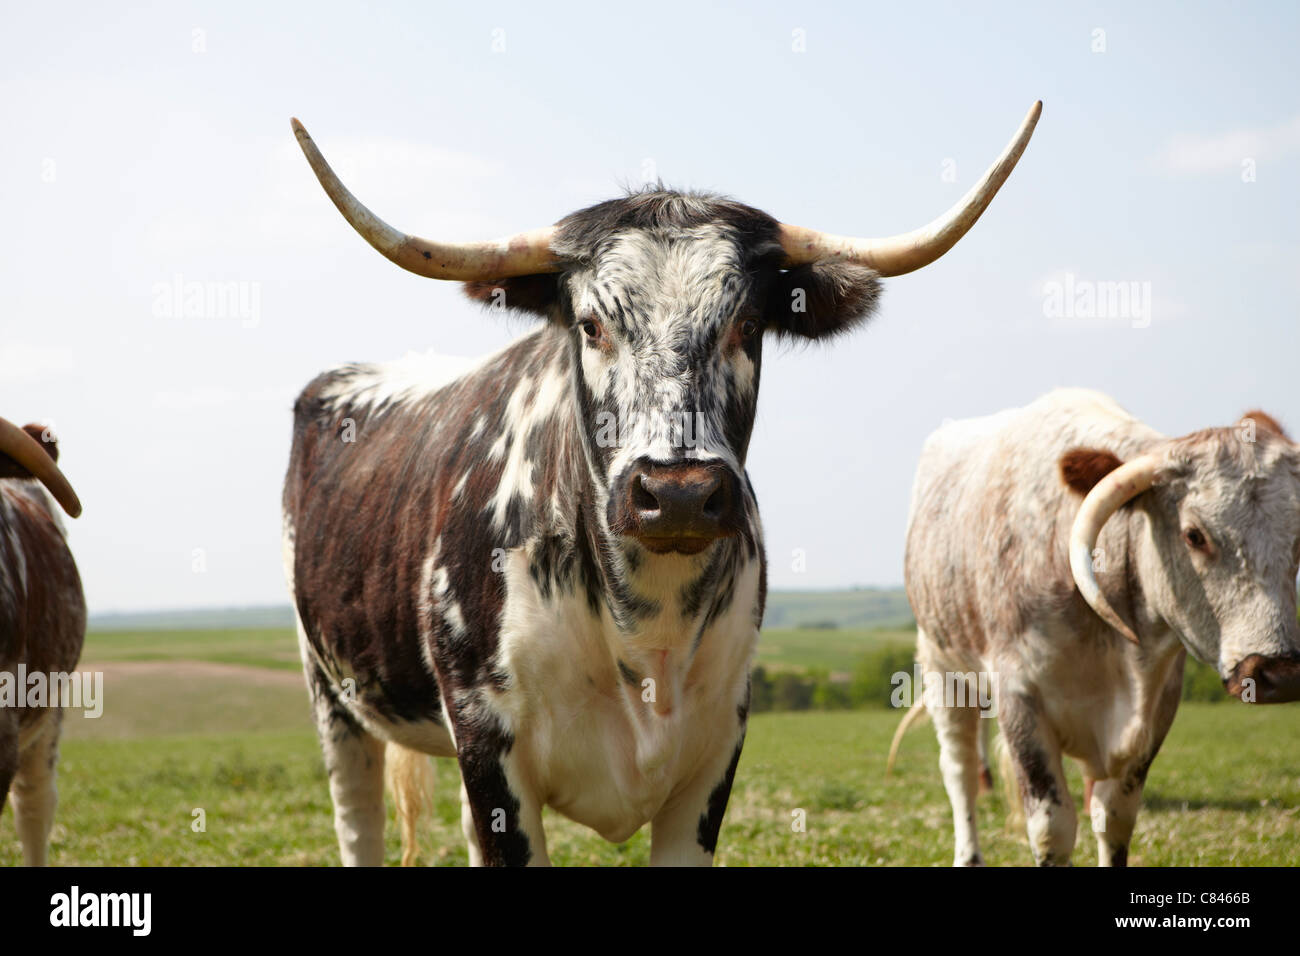 Longhorn cattle walking in field - Stock Image